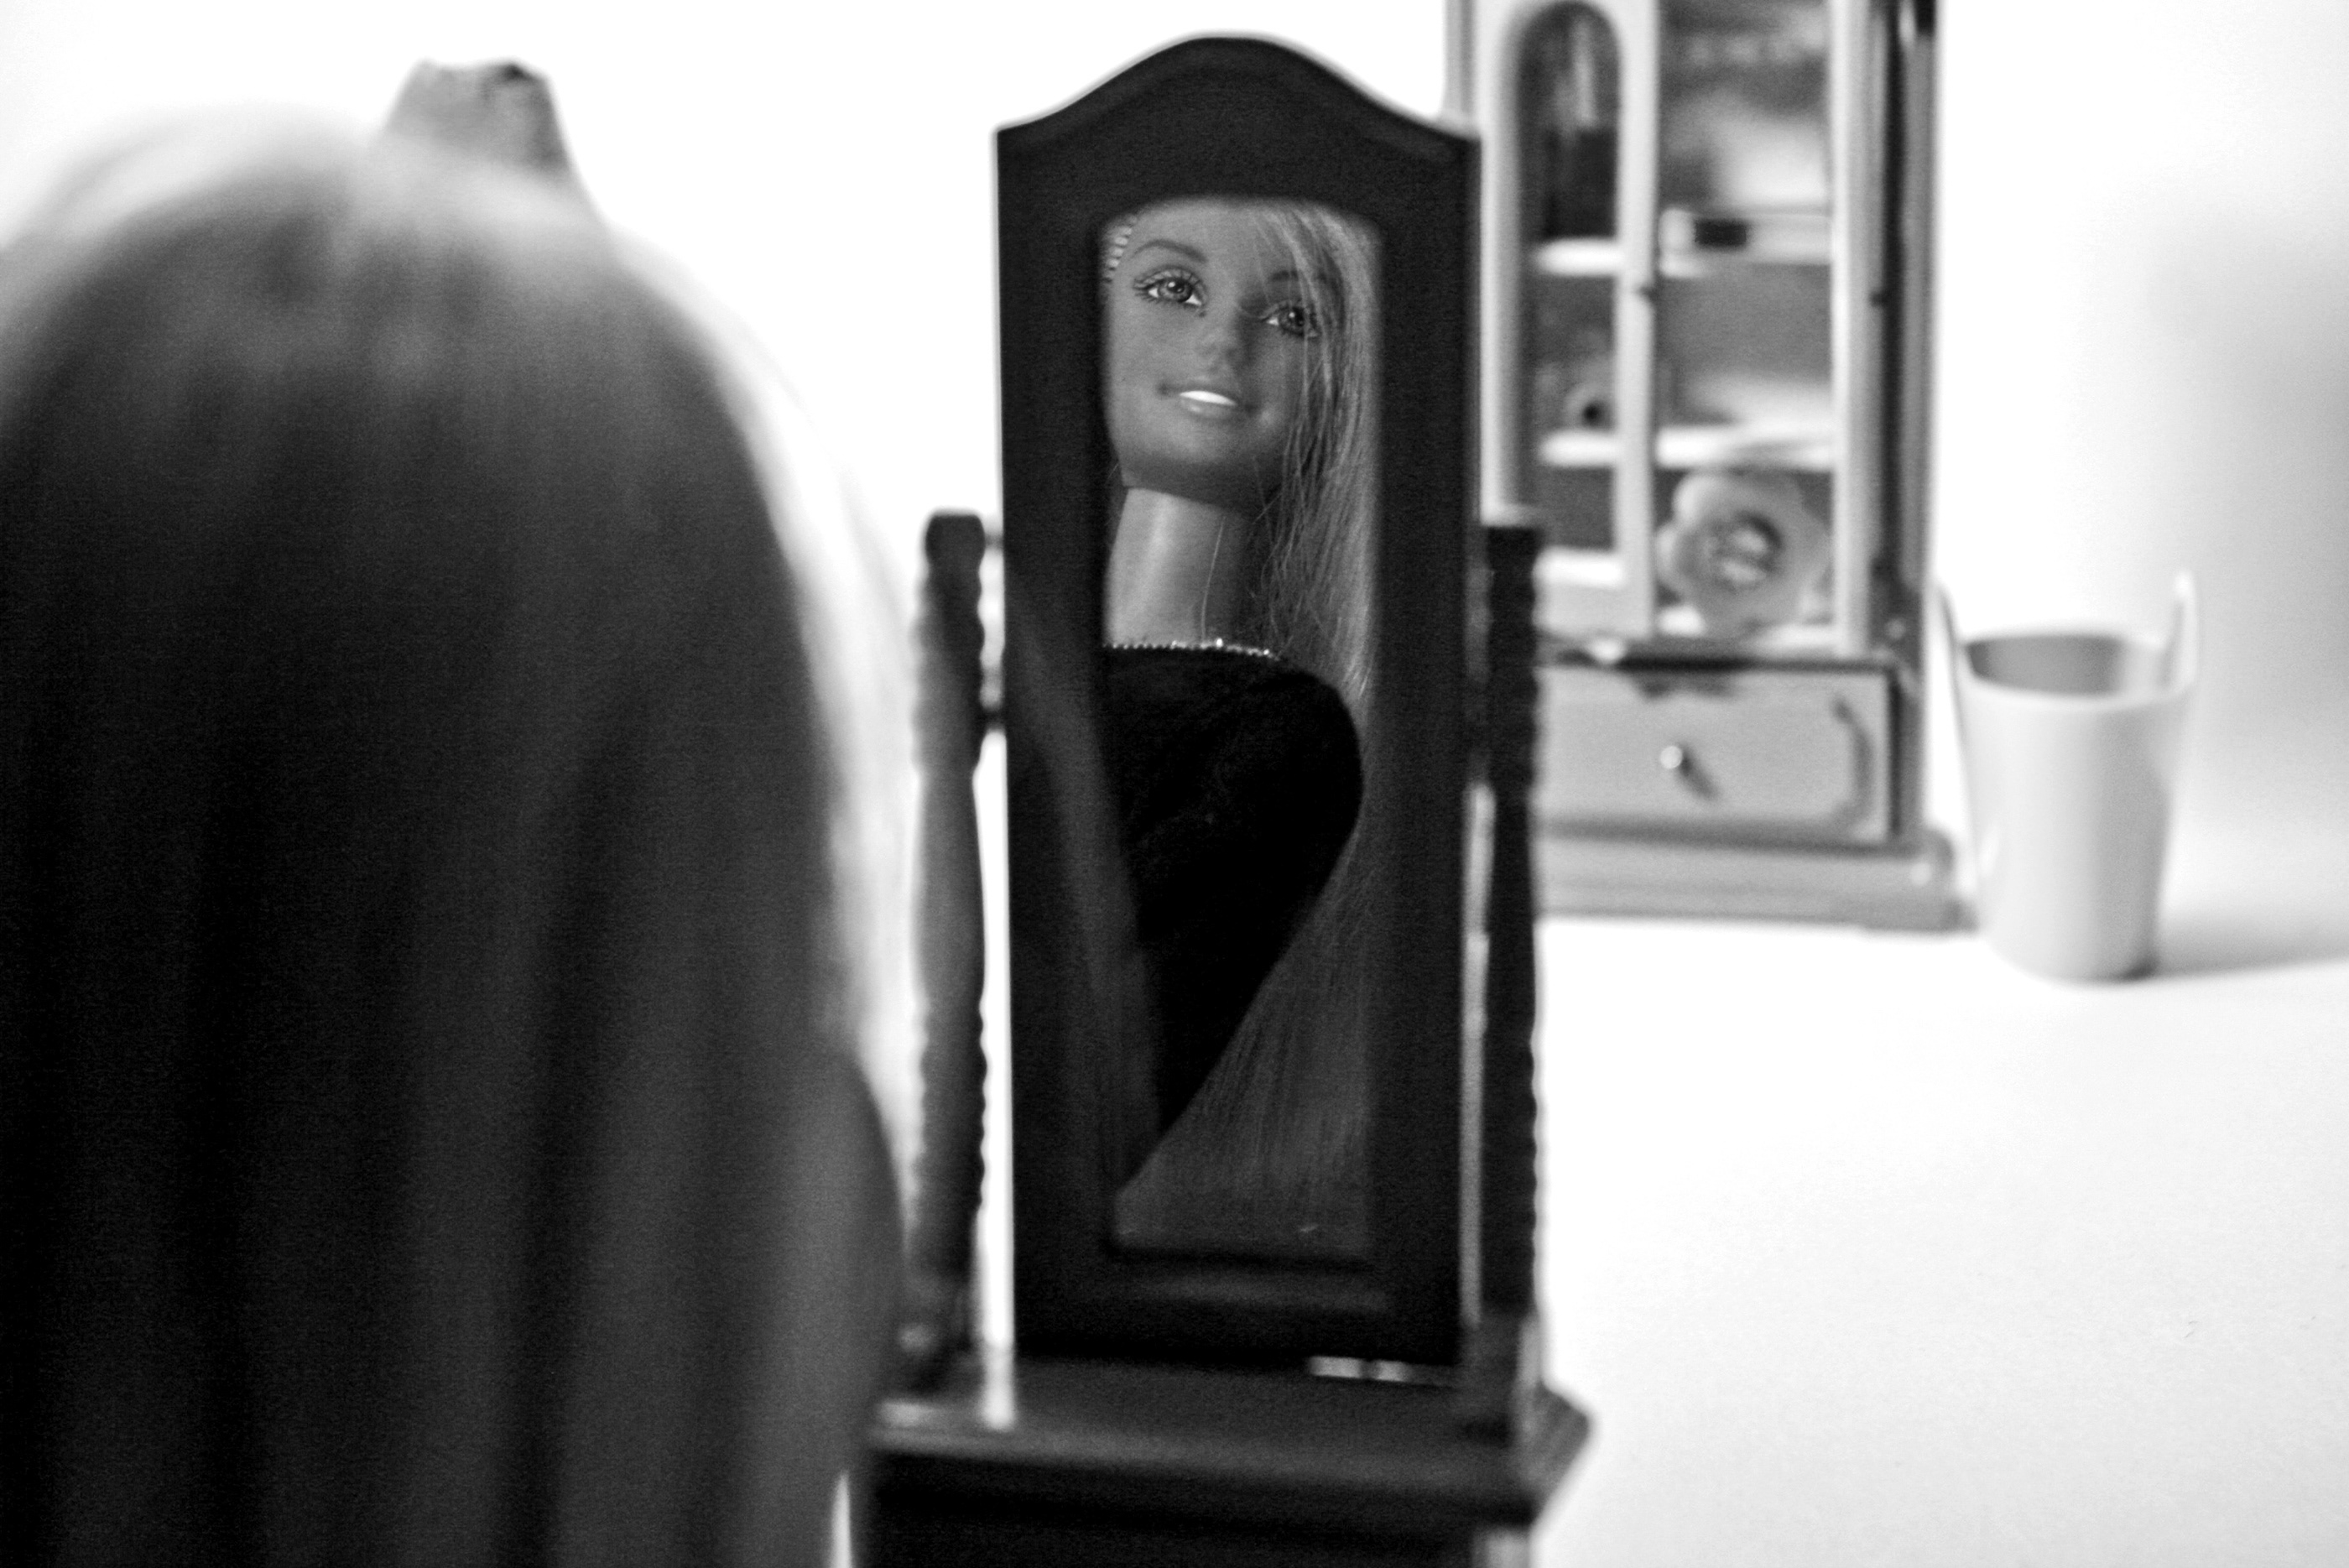 Barbie photo project